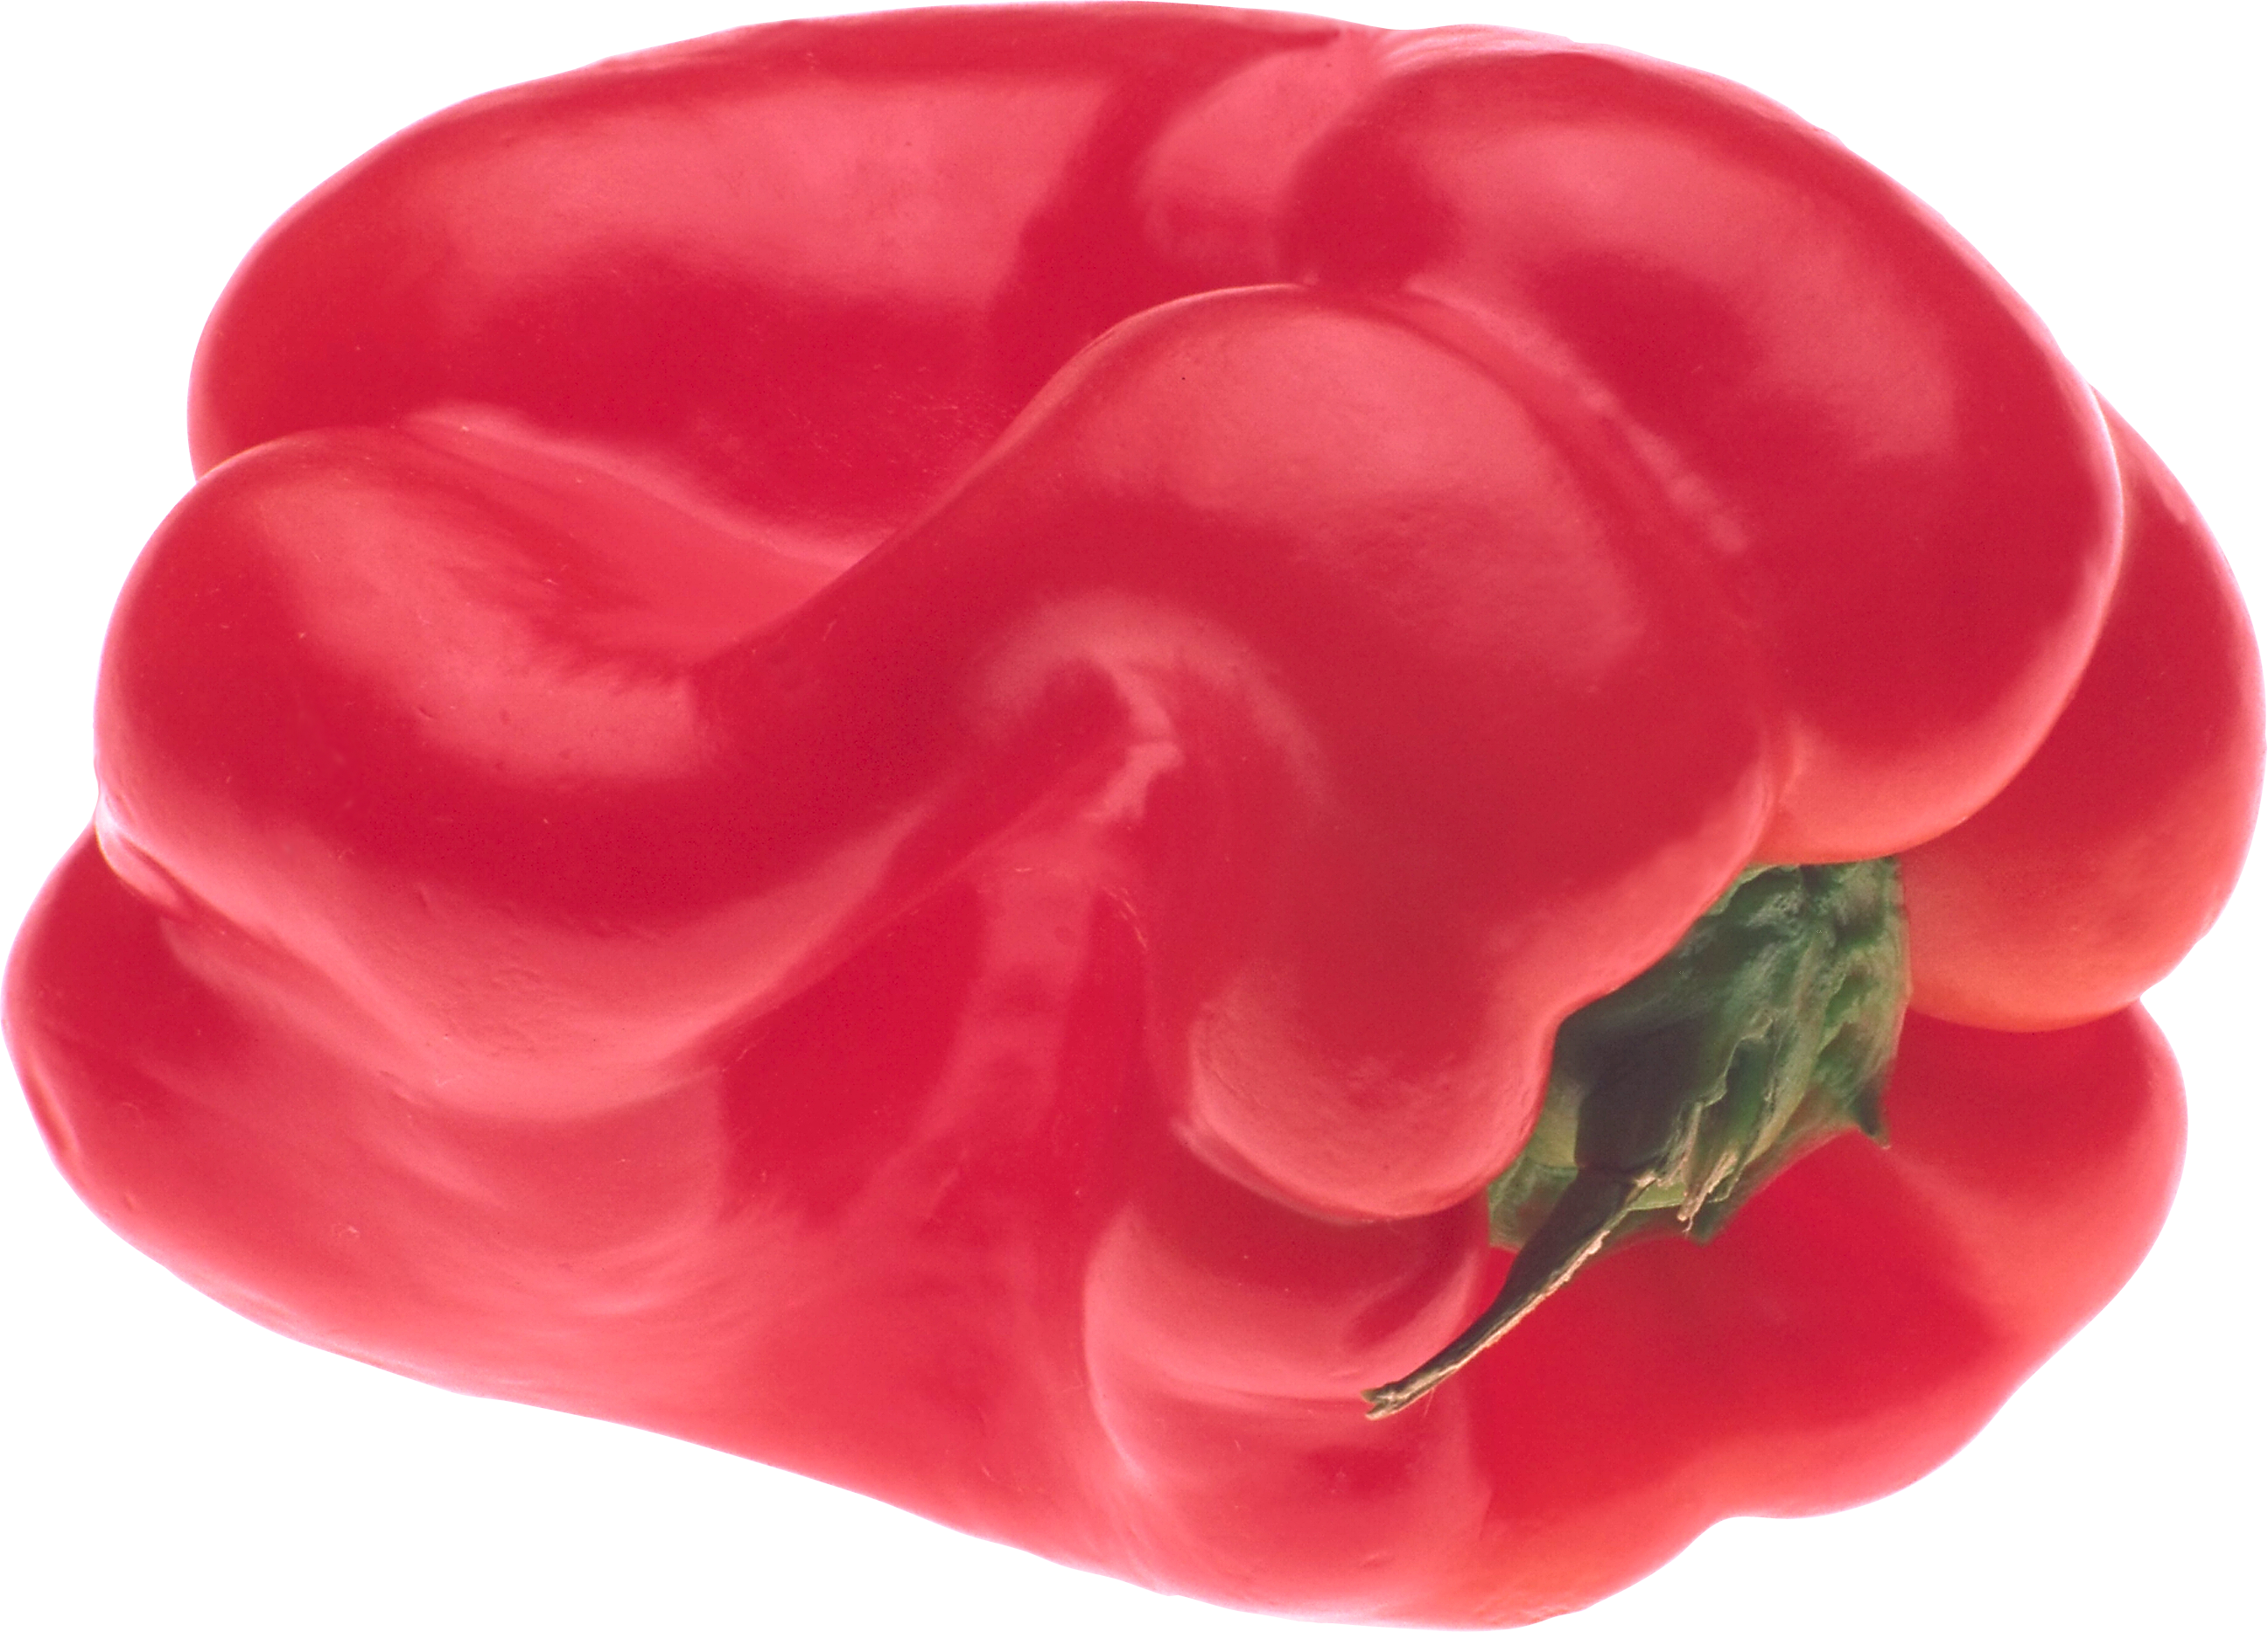 Red Pepper Png Image Stuffed Peppers Food Red Peppers